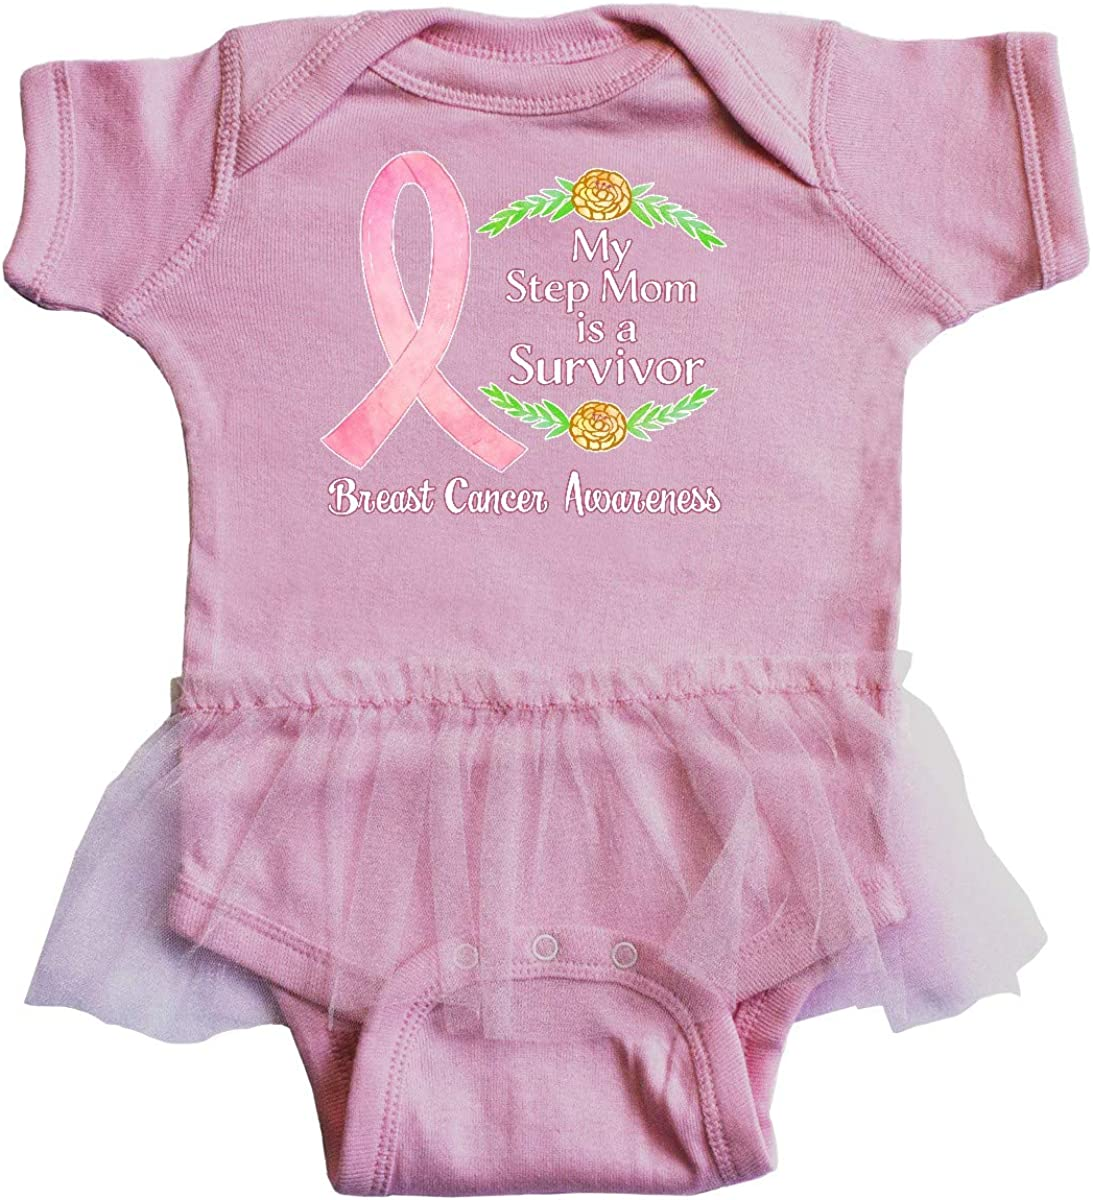 inktastic My Step Mom is a Survivor Breast Cancer Awareness Infant Tutu Bodysuit